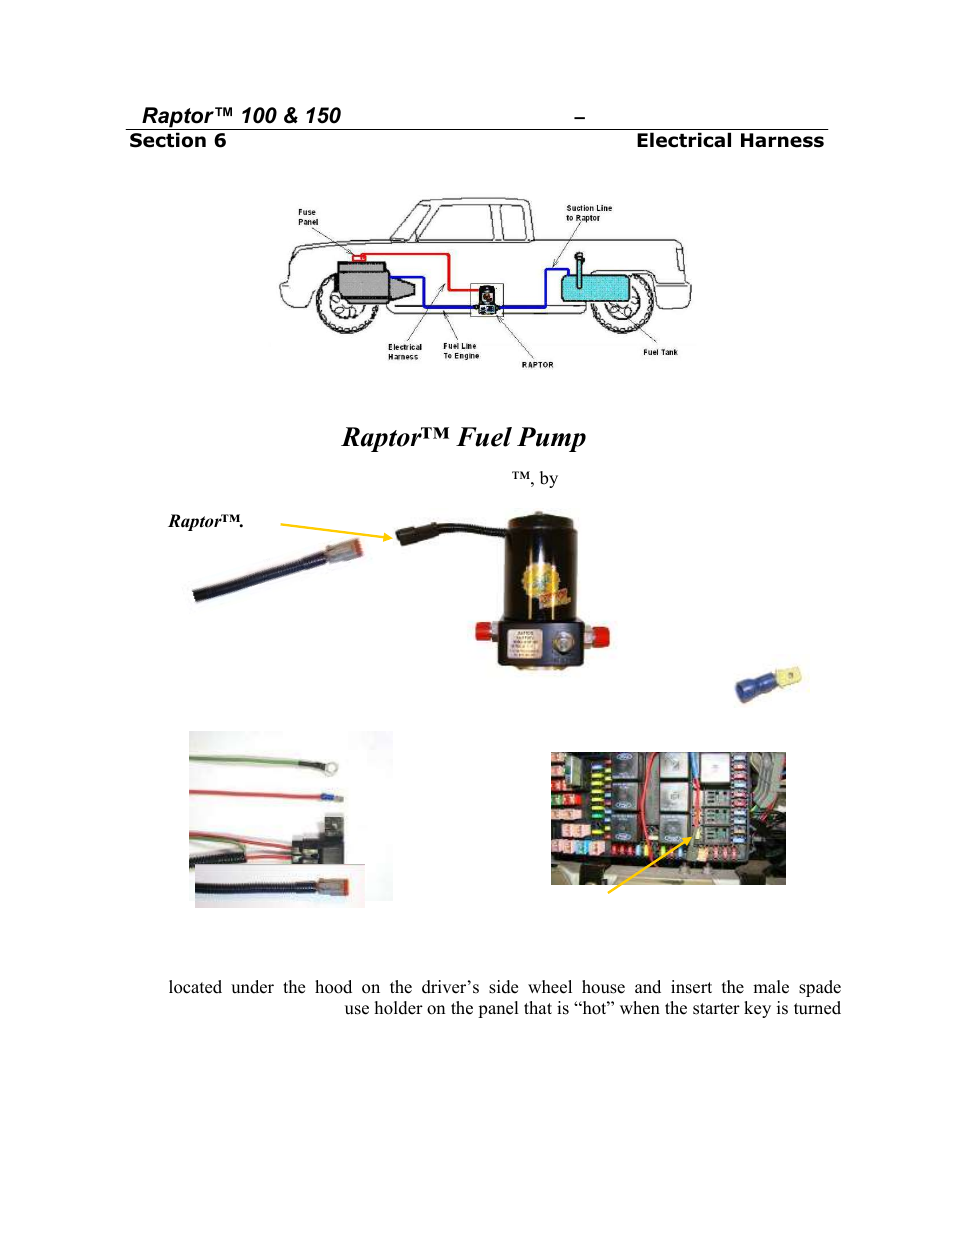 Fuel Pump Wiring Harness 2013 - Wiring Diagrams Entry Raptor Wiring Harness Diagram on